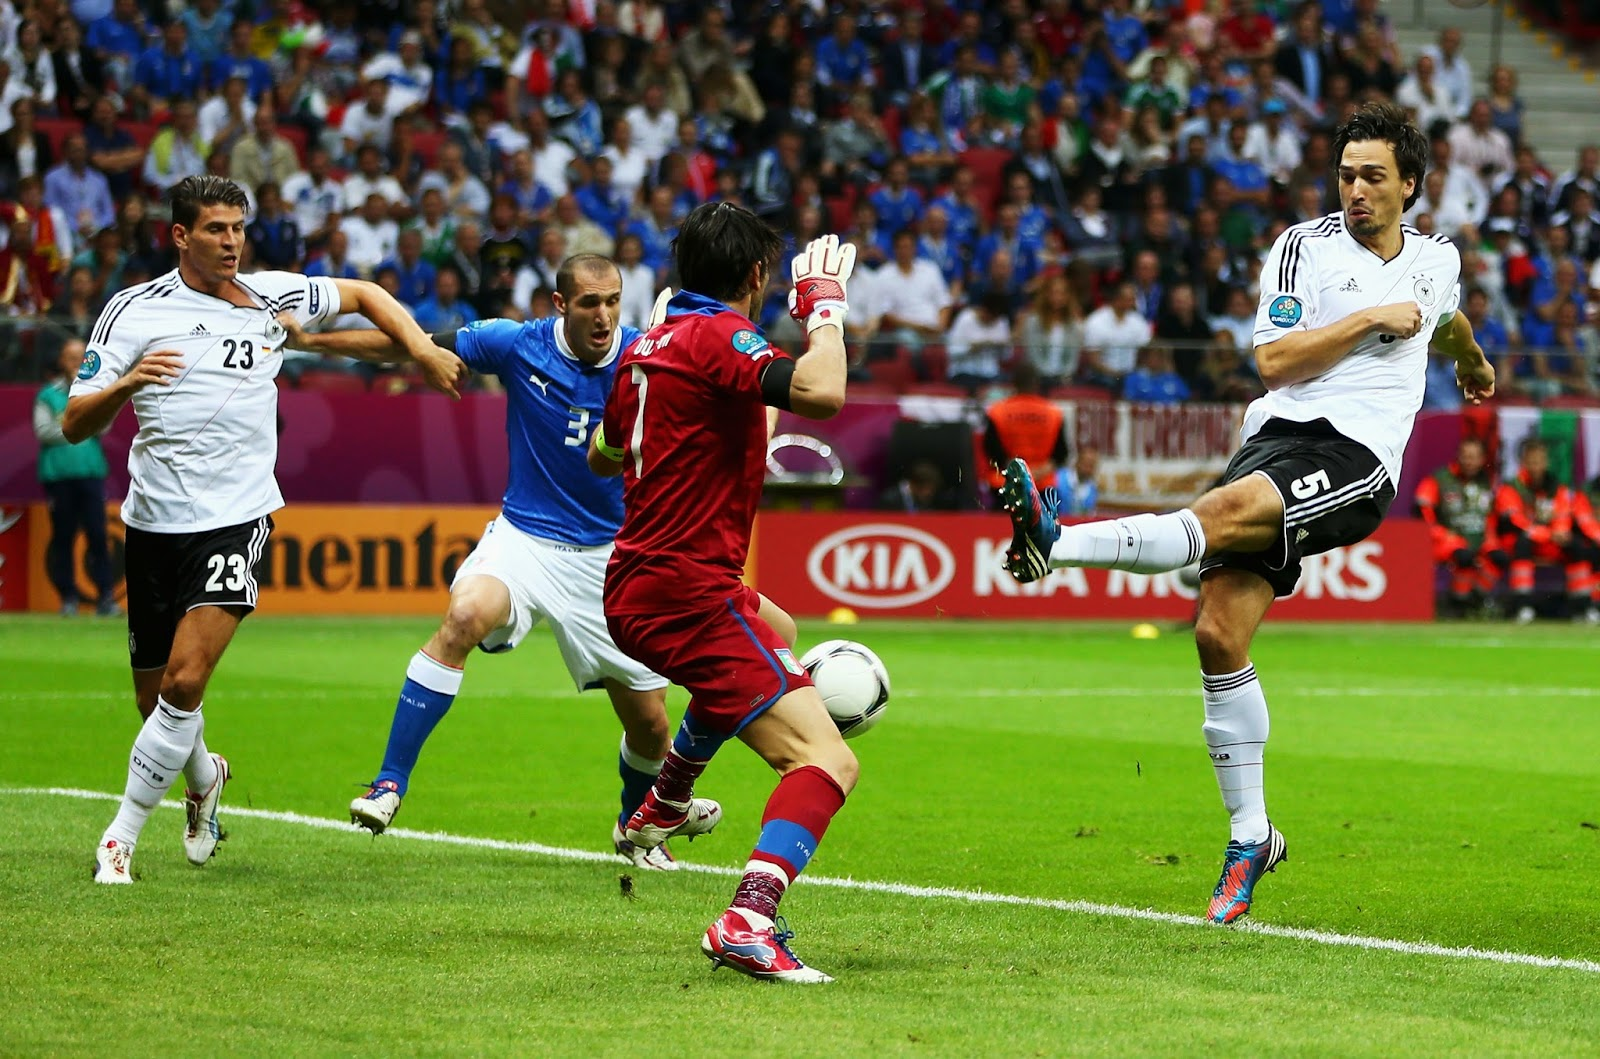 Italy vs. Germany at Euro 2012